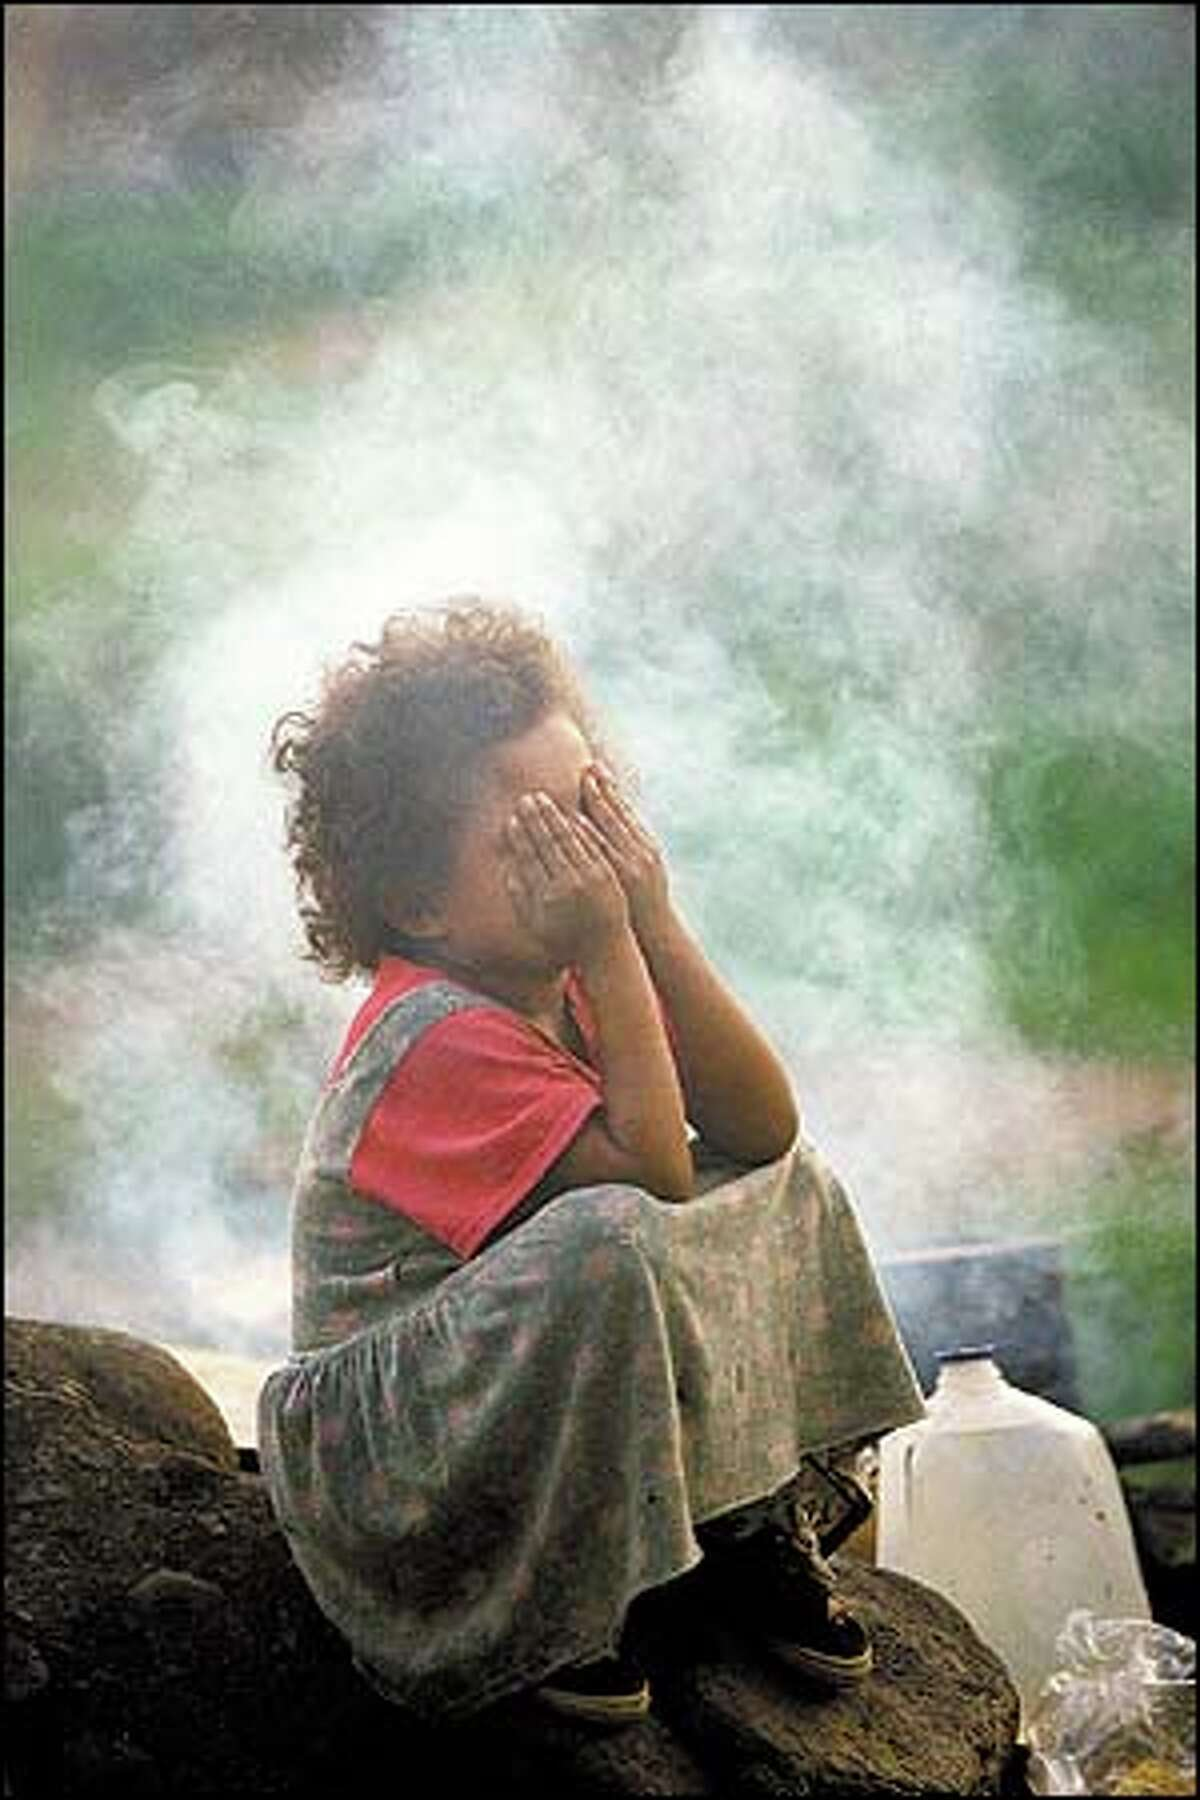 A child covers her eyes from cooking smoke in a makeshift camp for displaced coffee workers and their families in Matagalpa, Nicaragua.